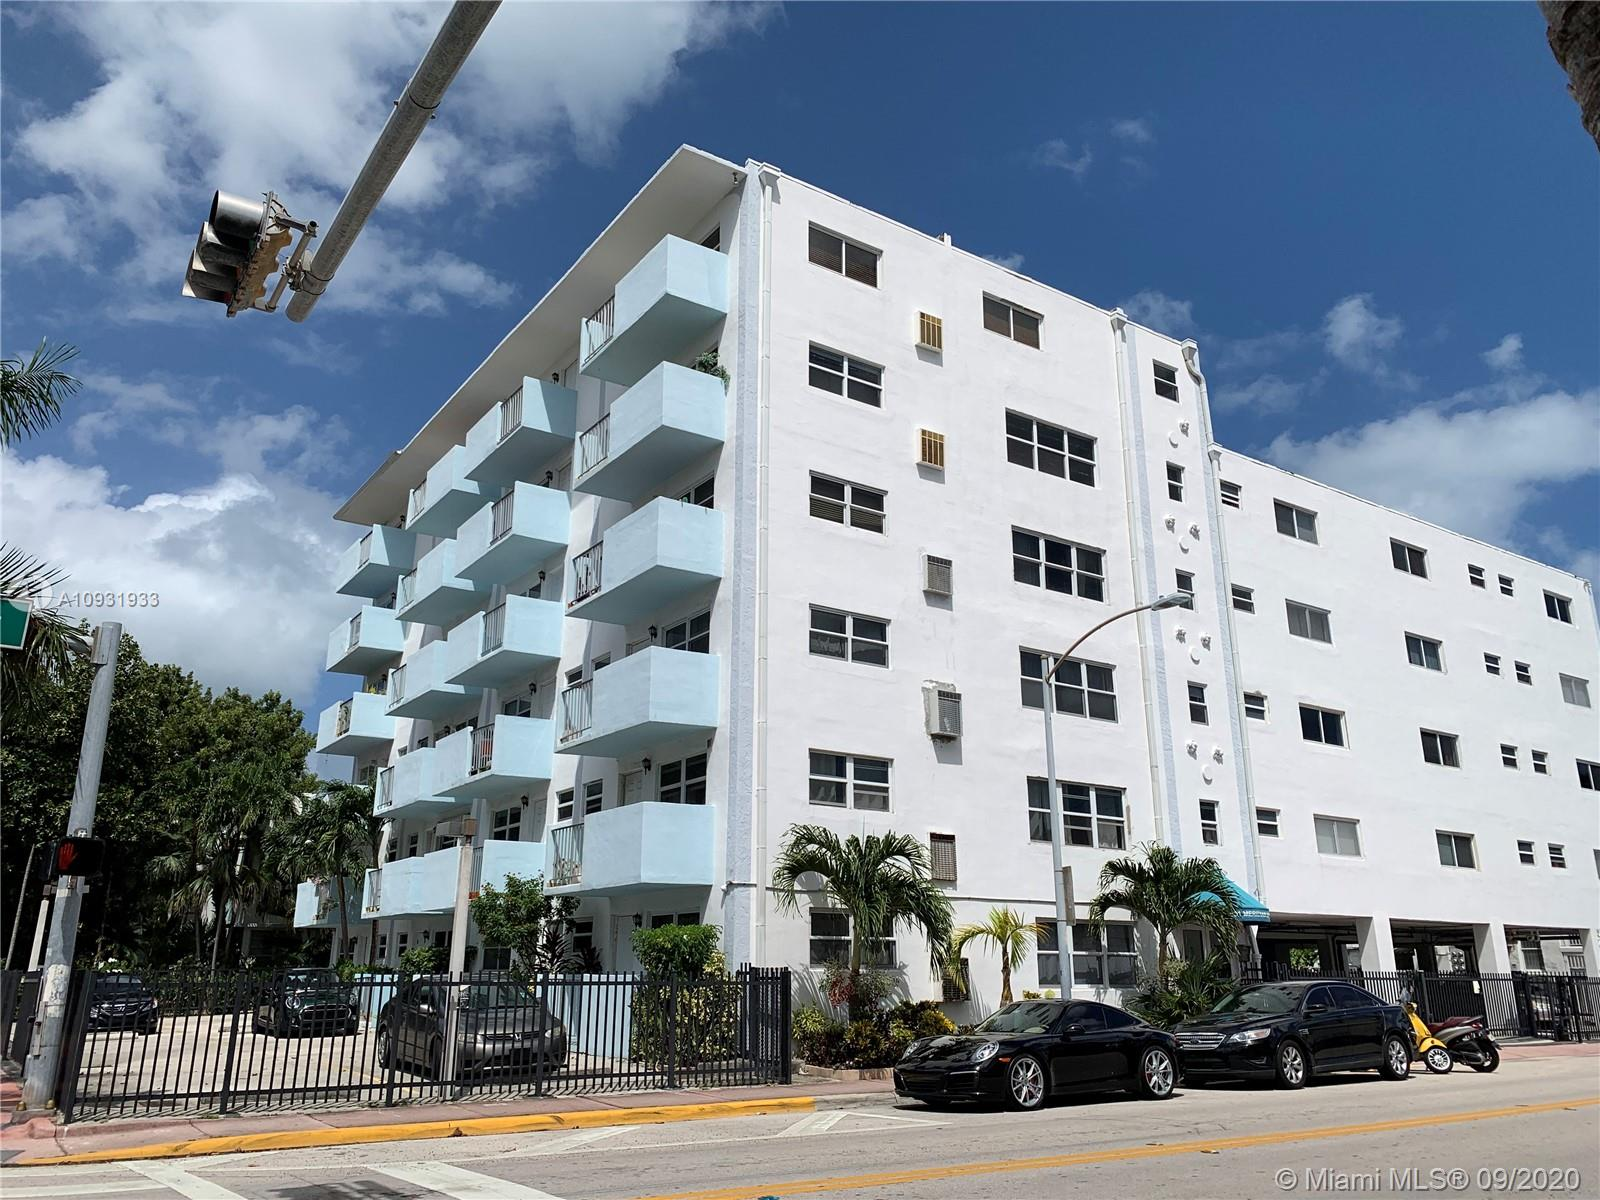 801 Meridian Ave, Miami Beach, Florida 33139, 2 Bedrooms Bedrooms, ,2 BathroomsBathrooms,Residential,For Sale,801 Meridian Ave,A10931933